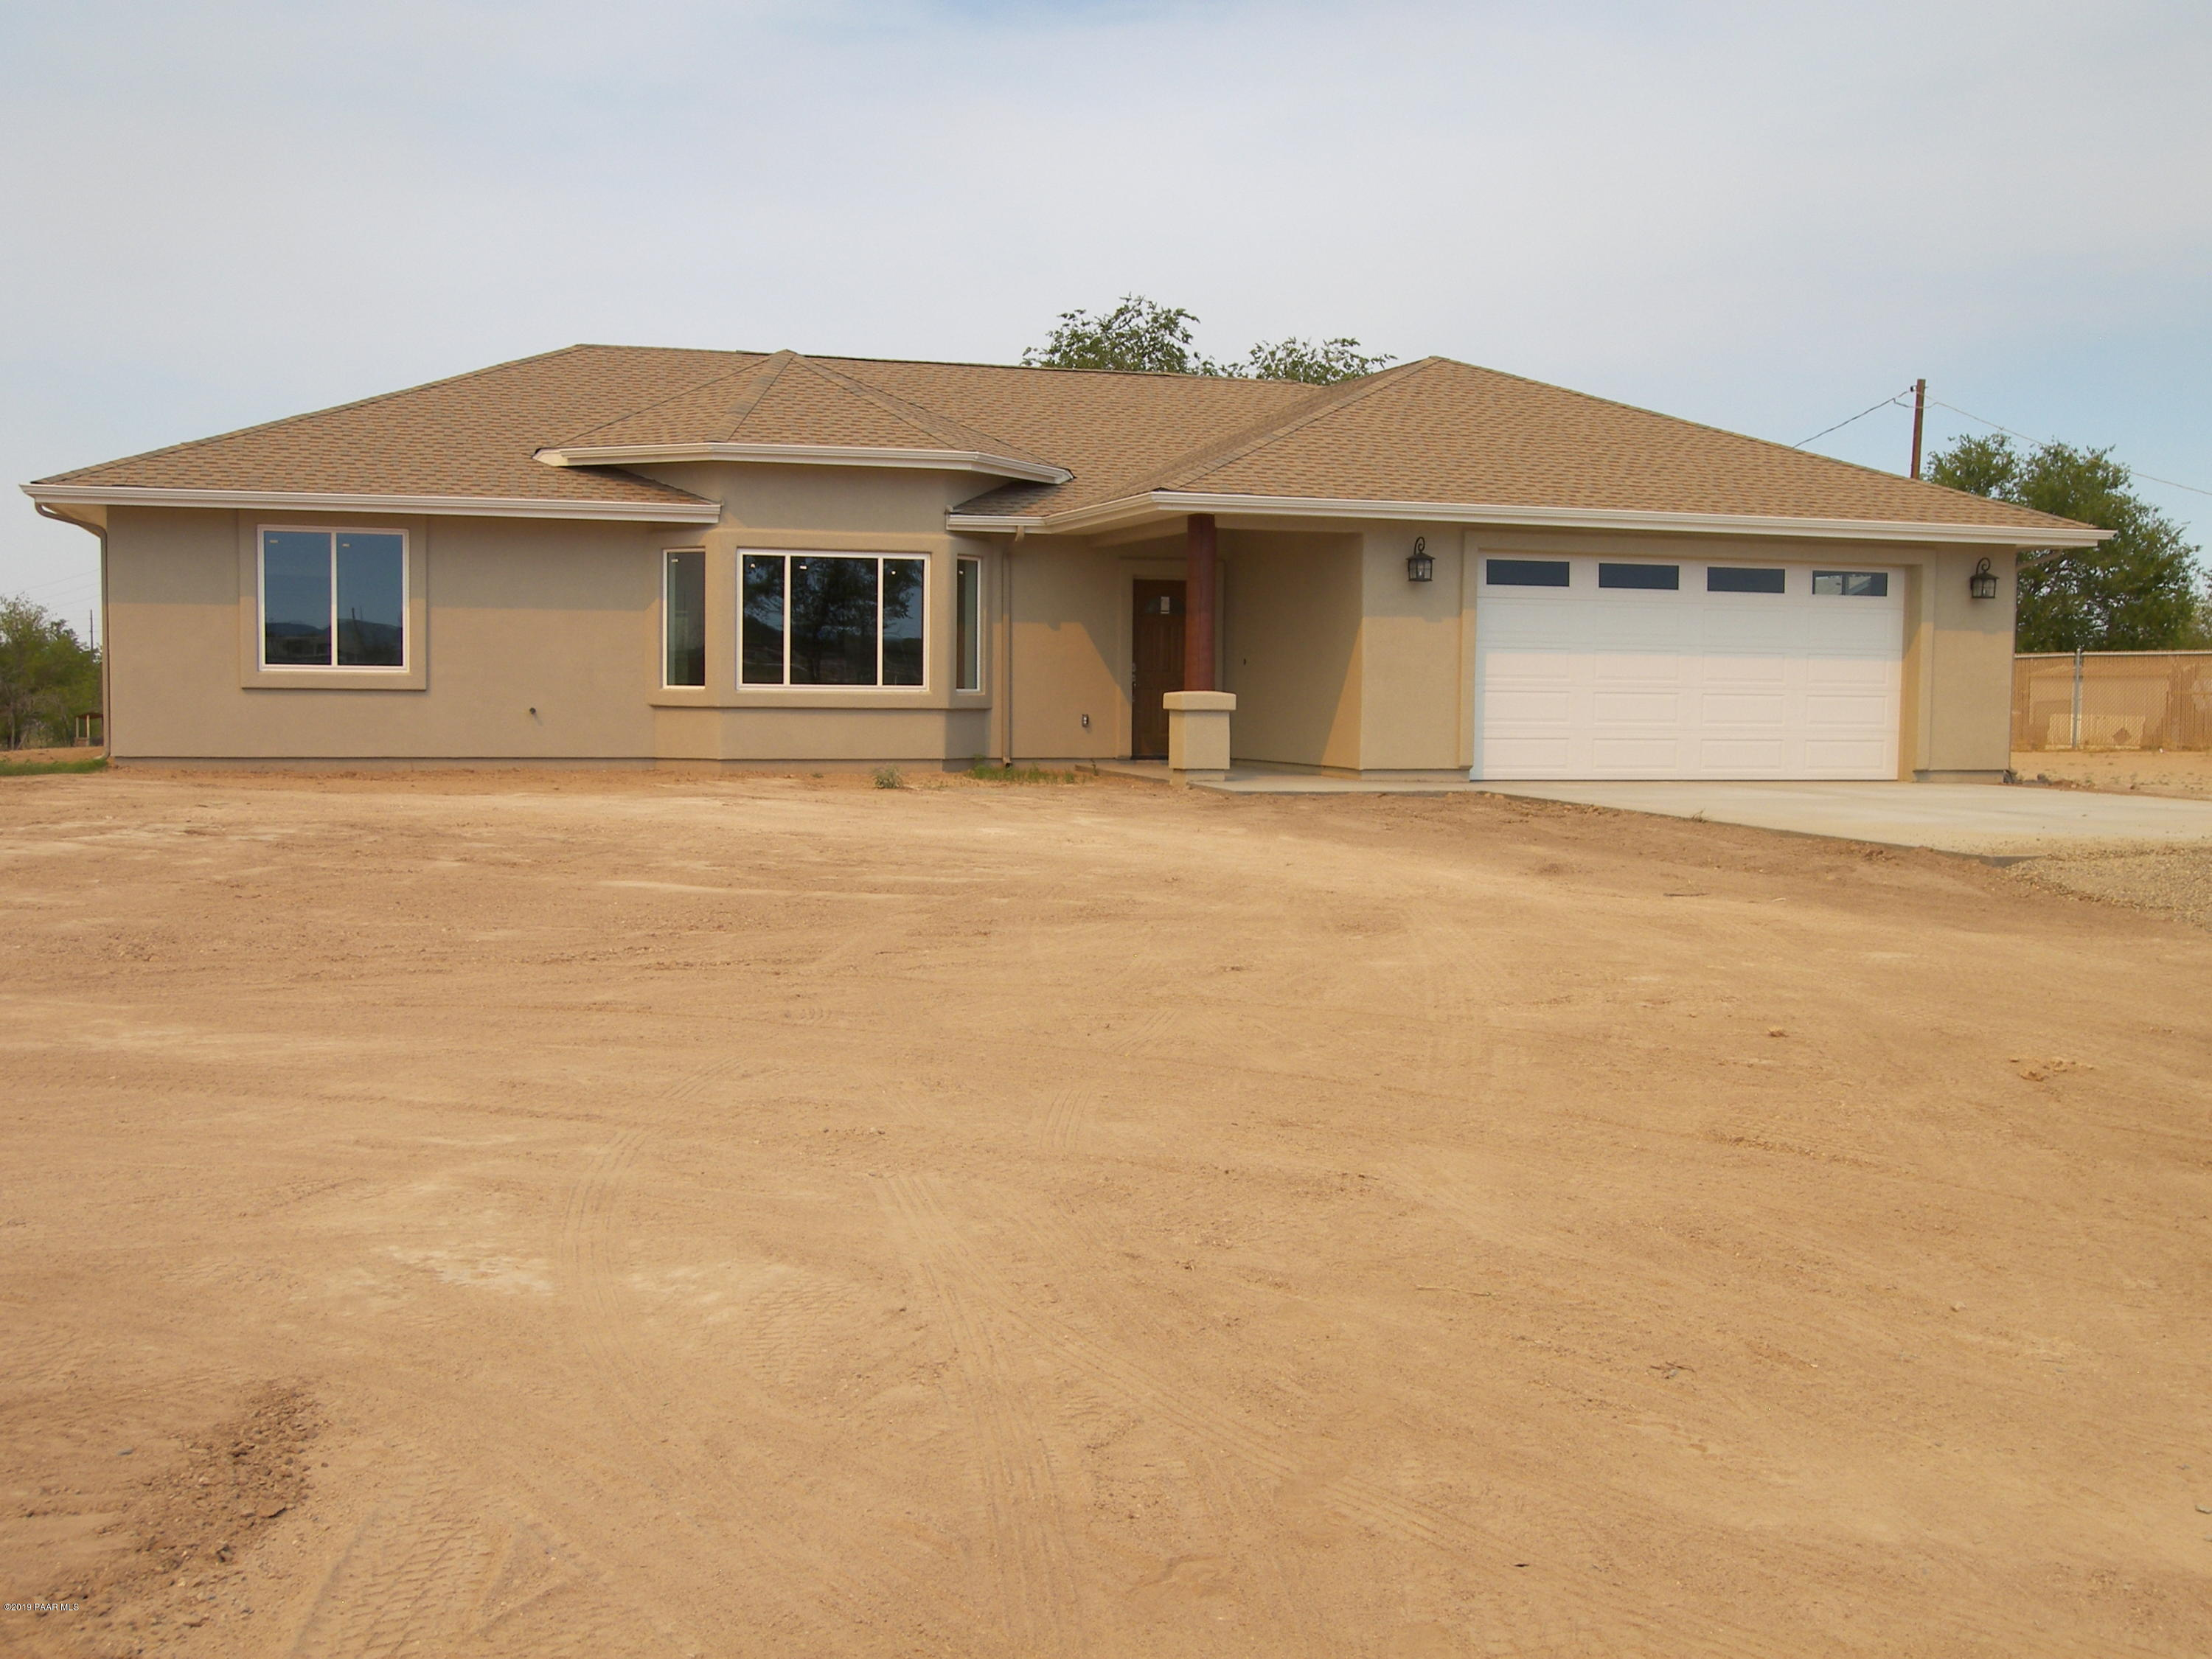 Photo of 279 Rd 1 West, Chino Valley, AZ 86323